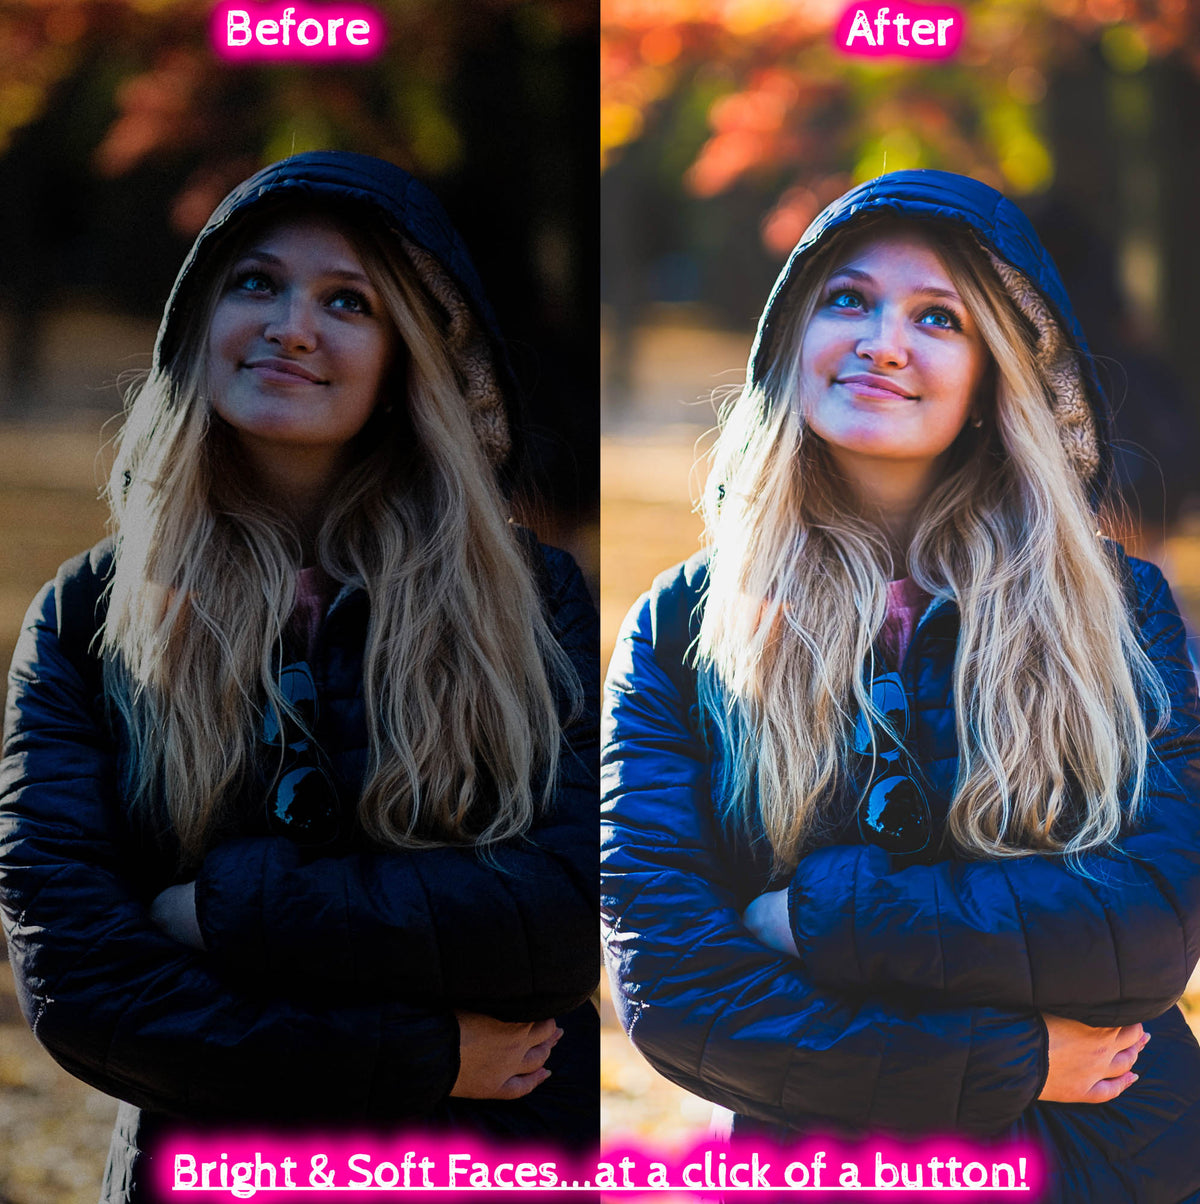 Lightroom Presets for Outdoor Portraits